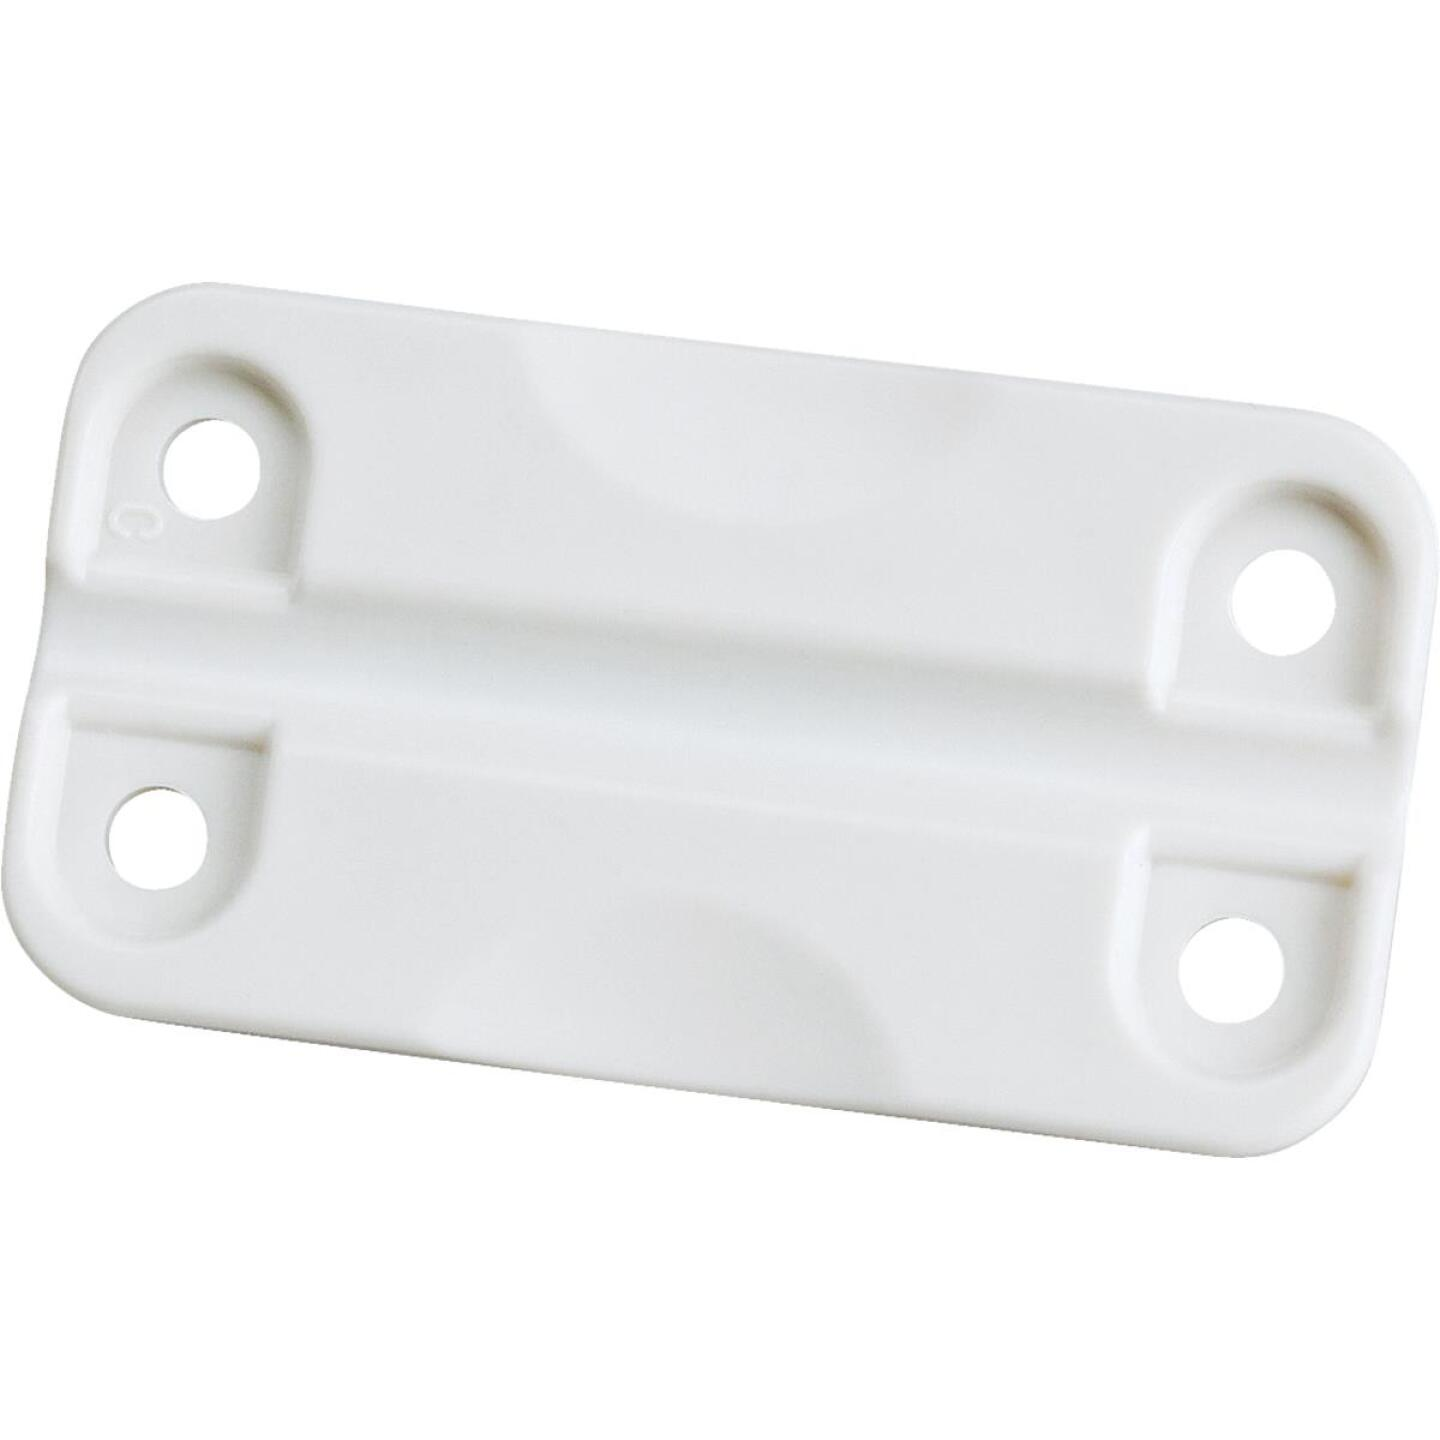 Igloo Surelock 95 White Cooler Hinge (2-Pack) Image 1